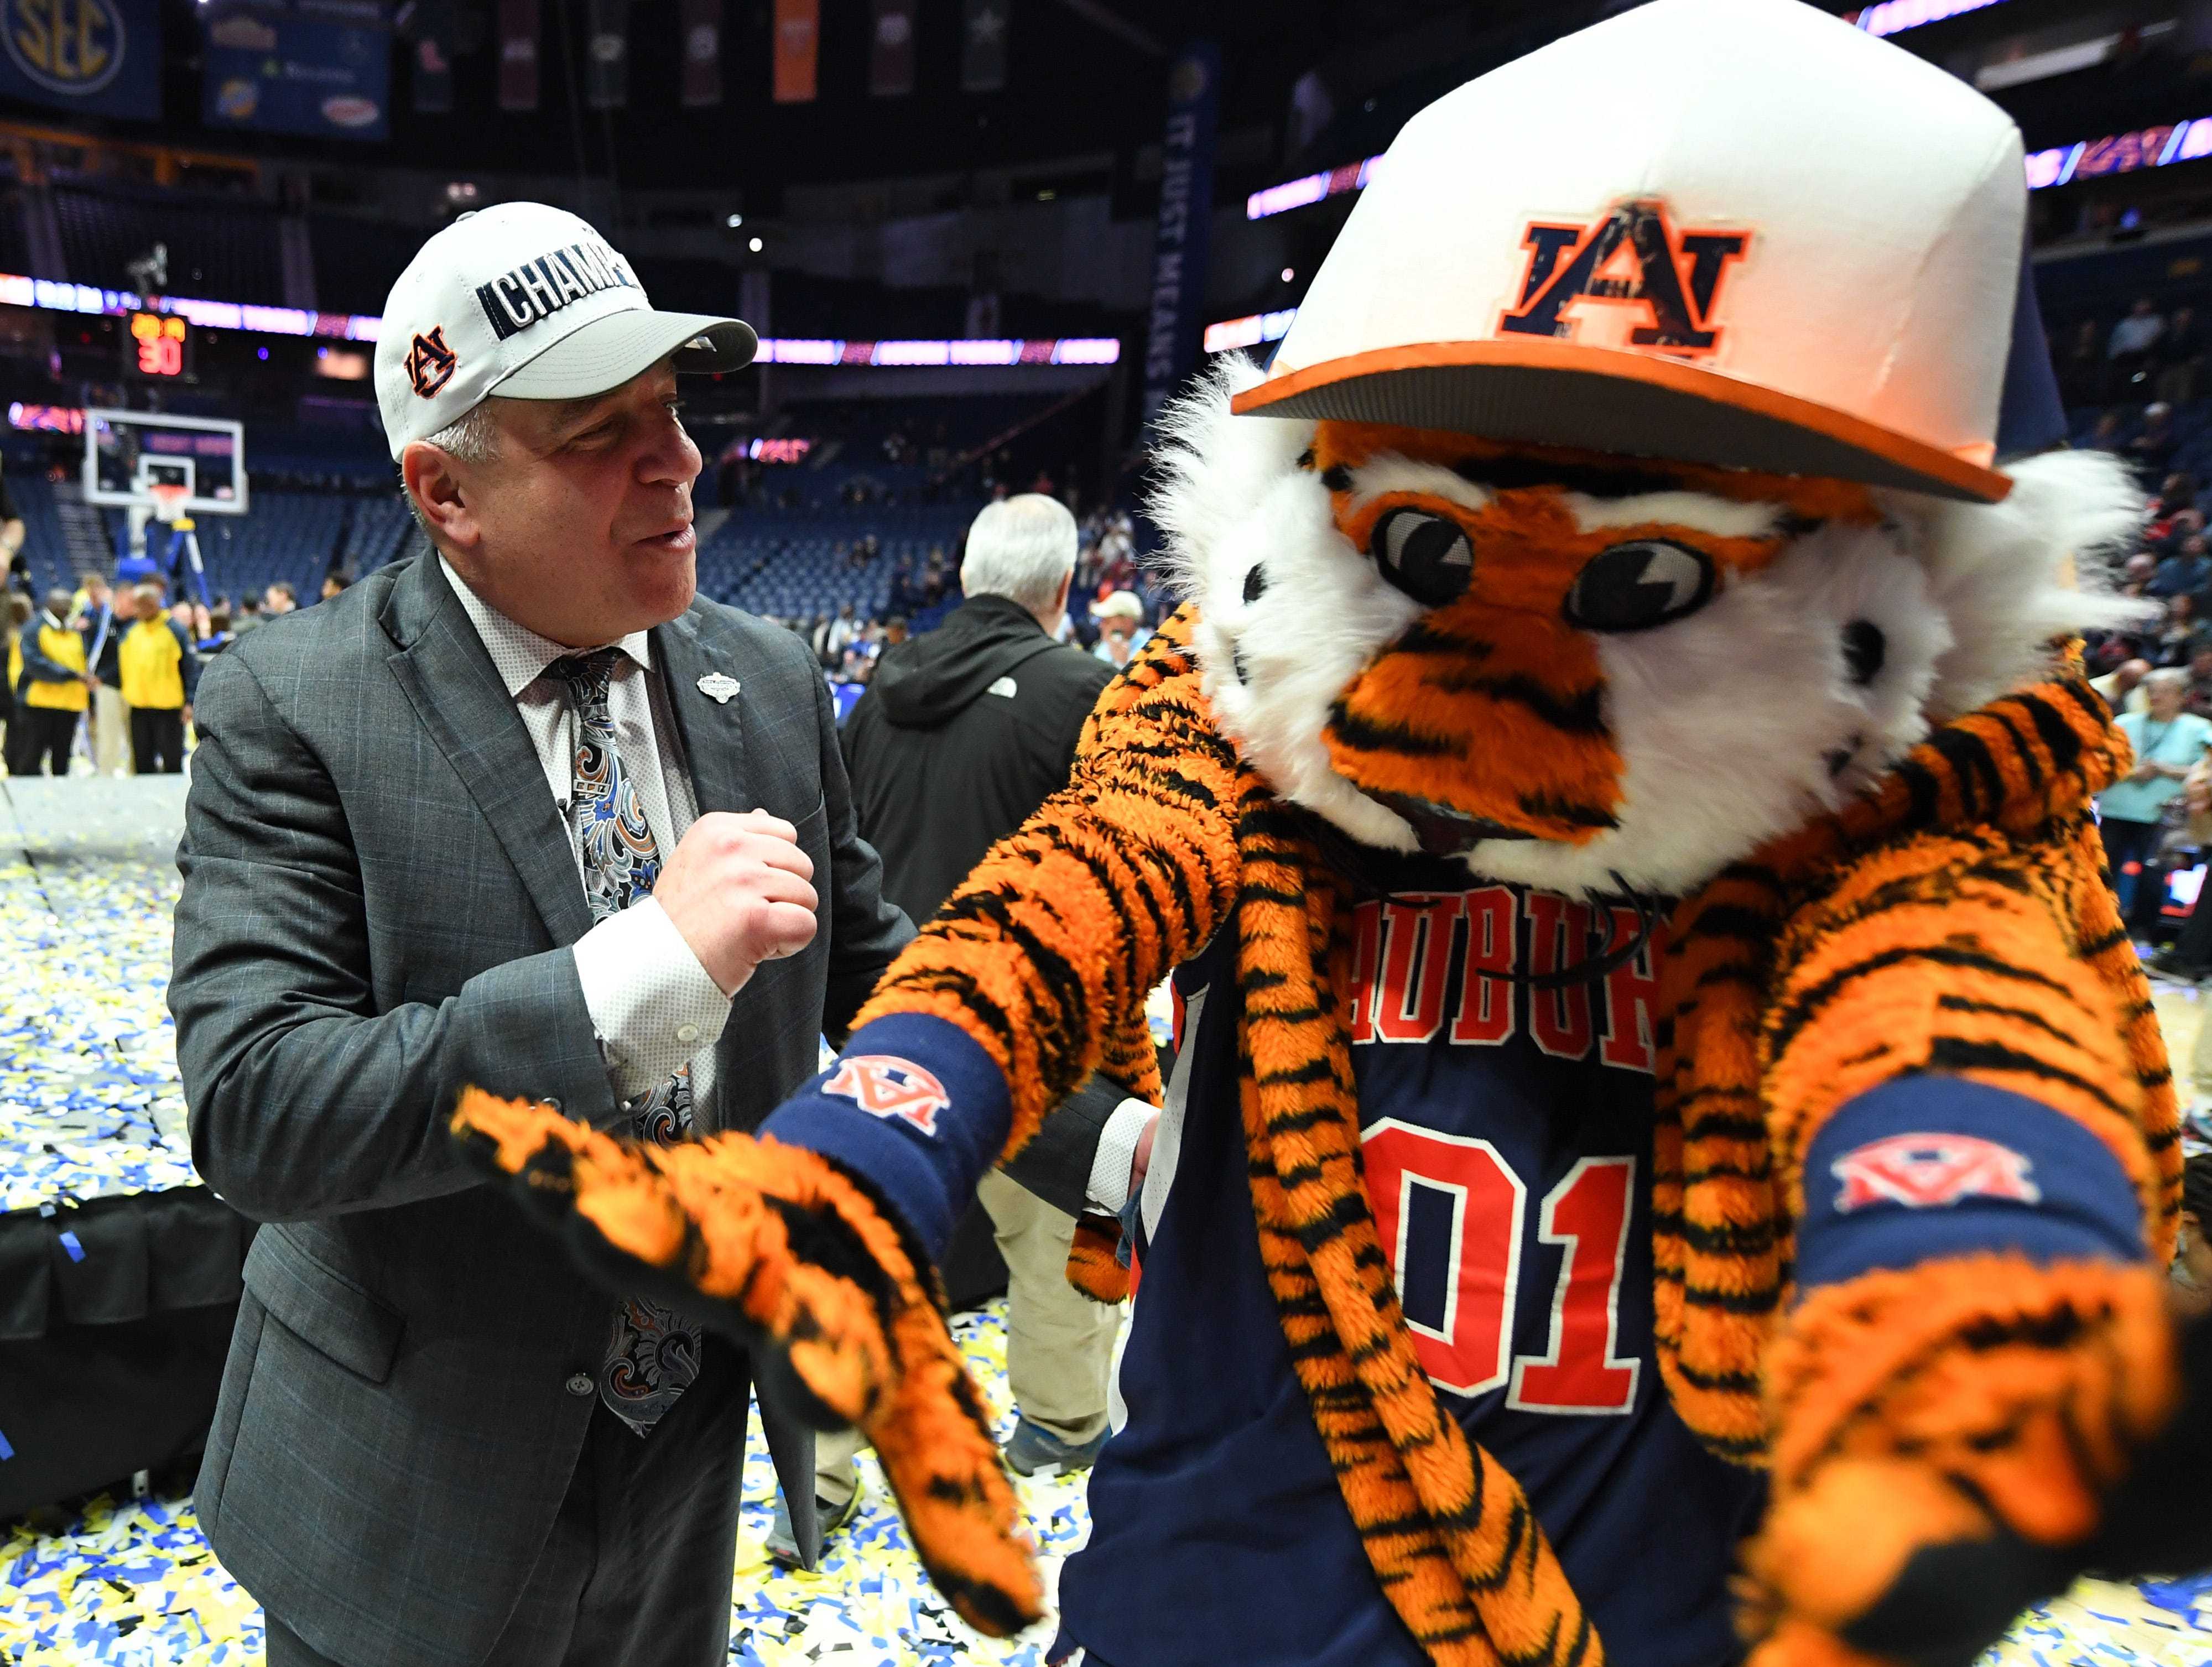 Mar 17, 2019; Nashville, TN, USA; Auburn Tigers head coach Bruce Pearl celebrates with Auburn Tigers mascot Aubie after beating the Tennessee Volunteers in the SEC conference tournament championship game at Bridgestone Arena. Mandatory Credit: Christopher Hanewinckel-USA TODAY Sports